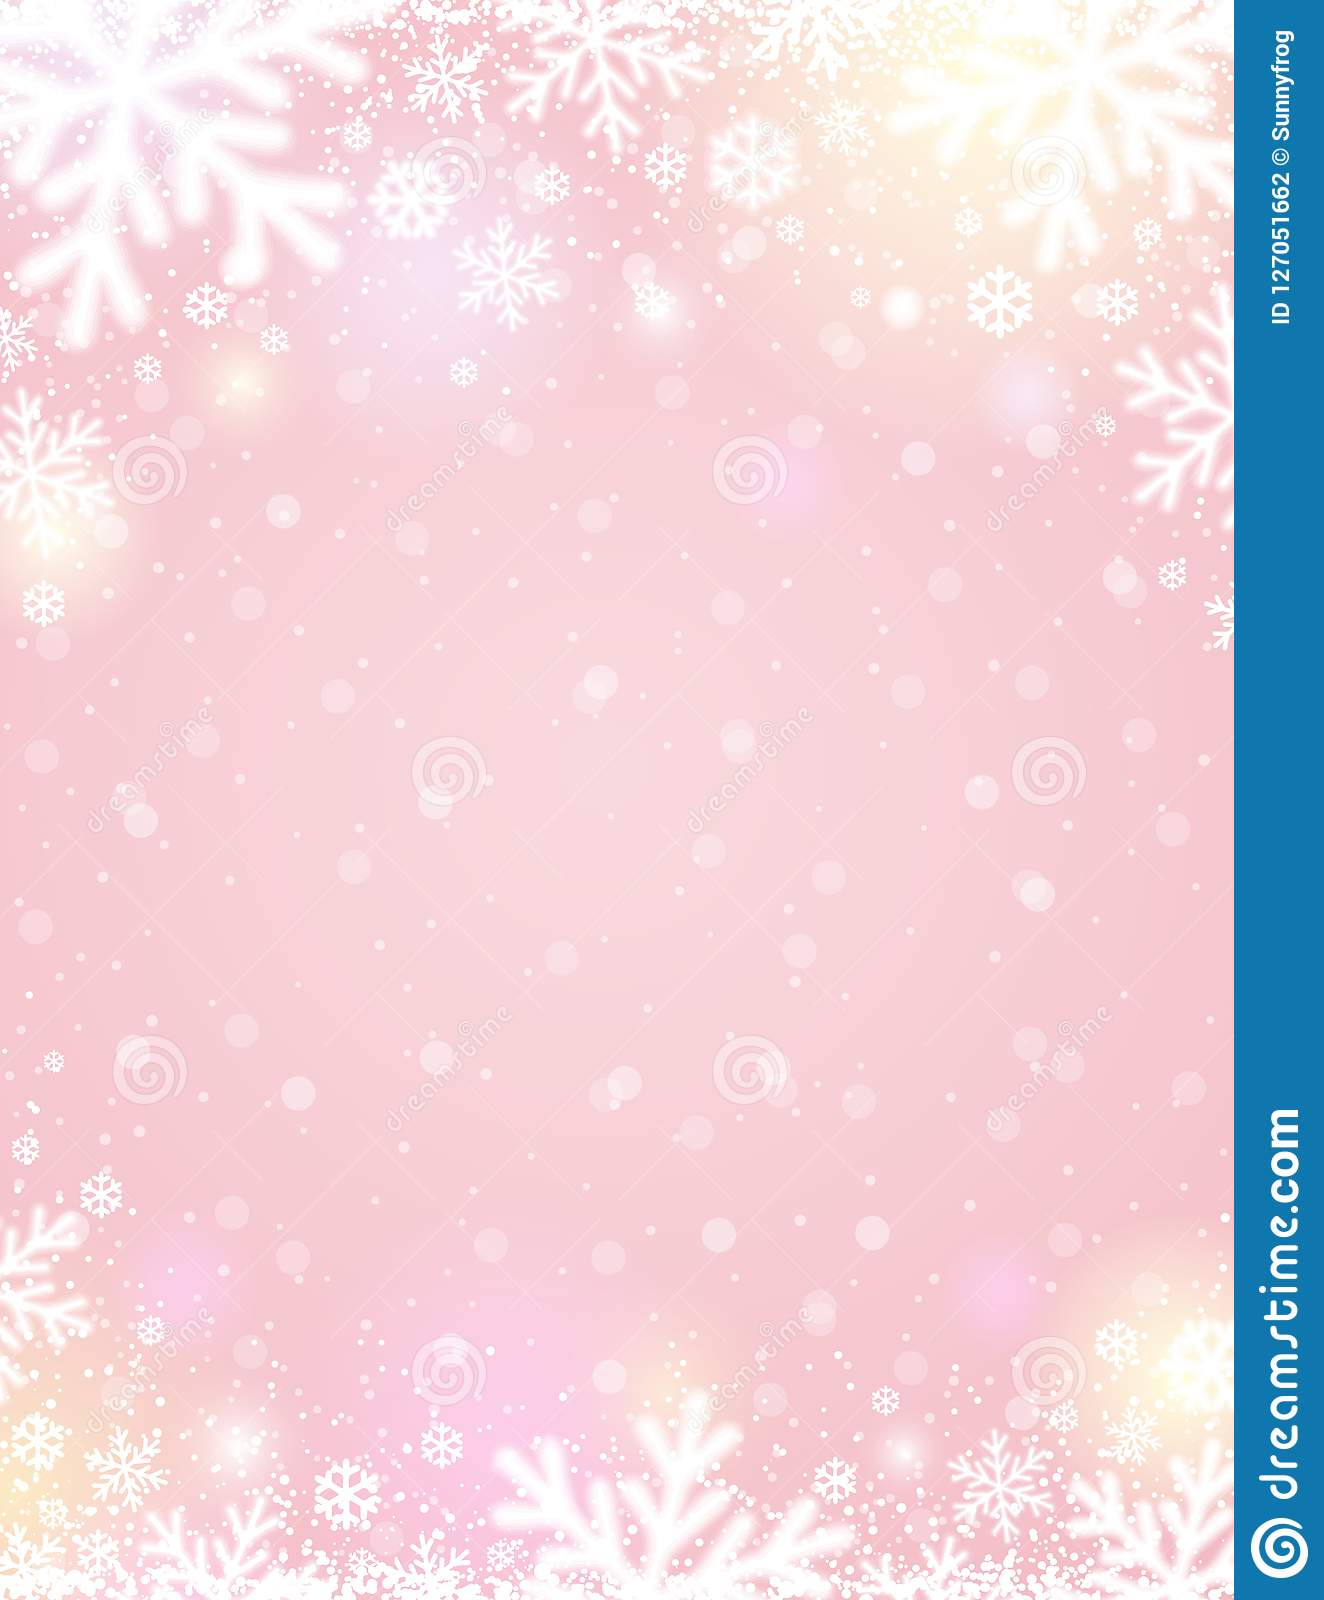 Pink Christmas Background With White Blurred Snowflakes